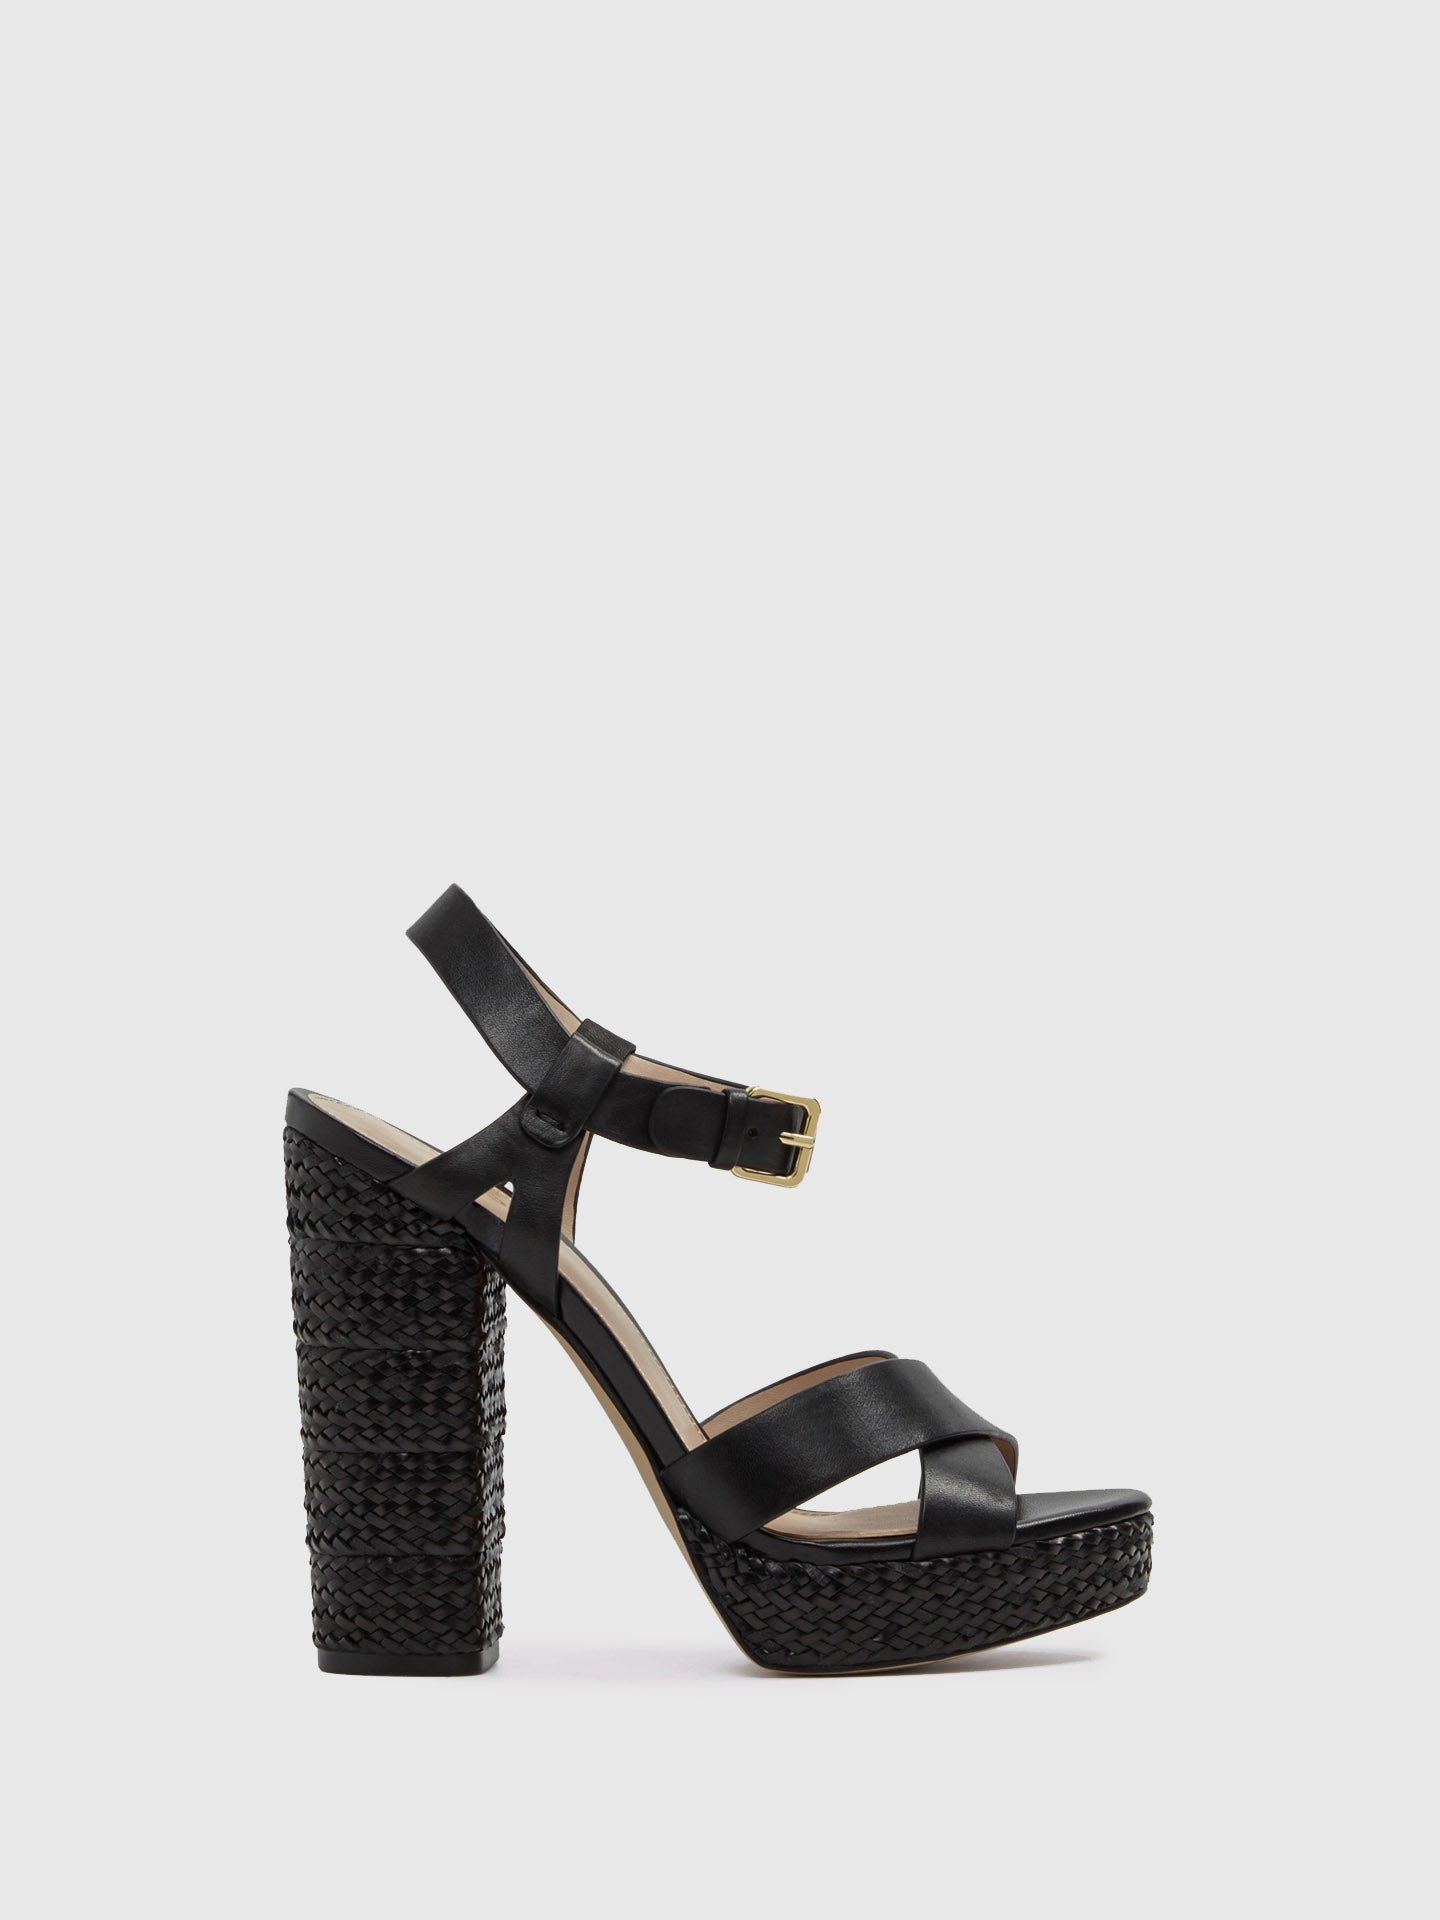 Aldo Black Sling-Back Pumps Sandals